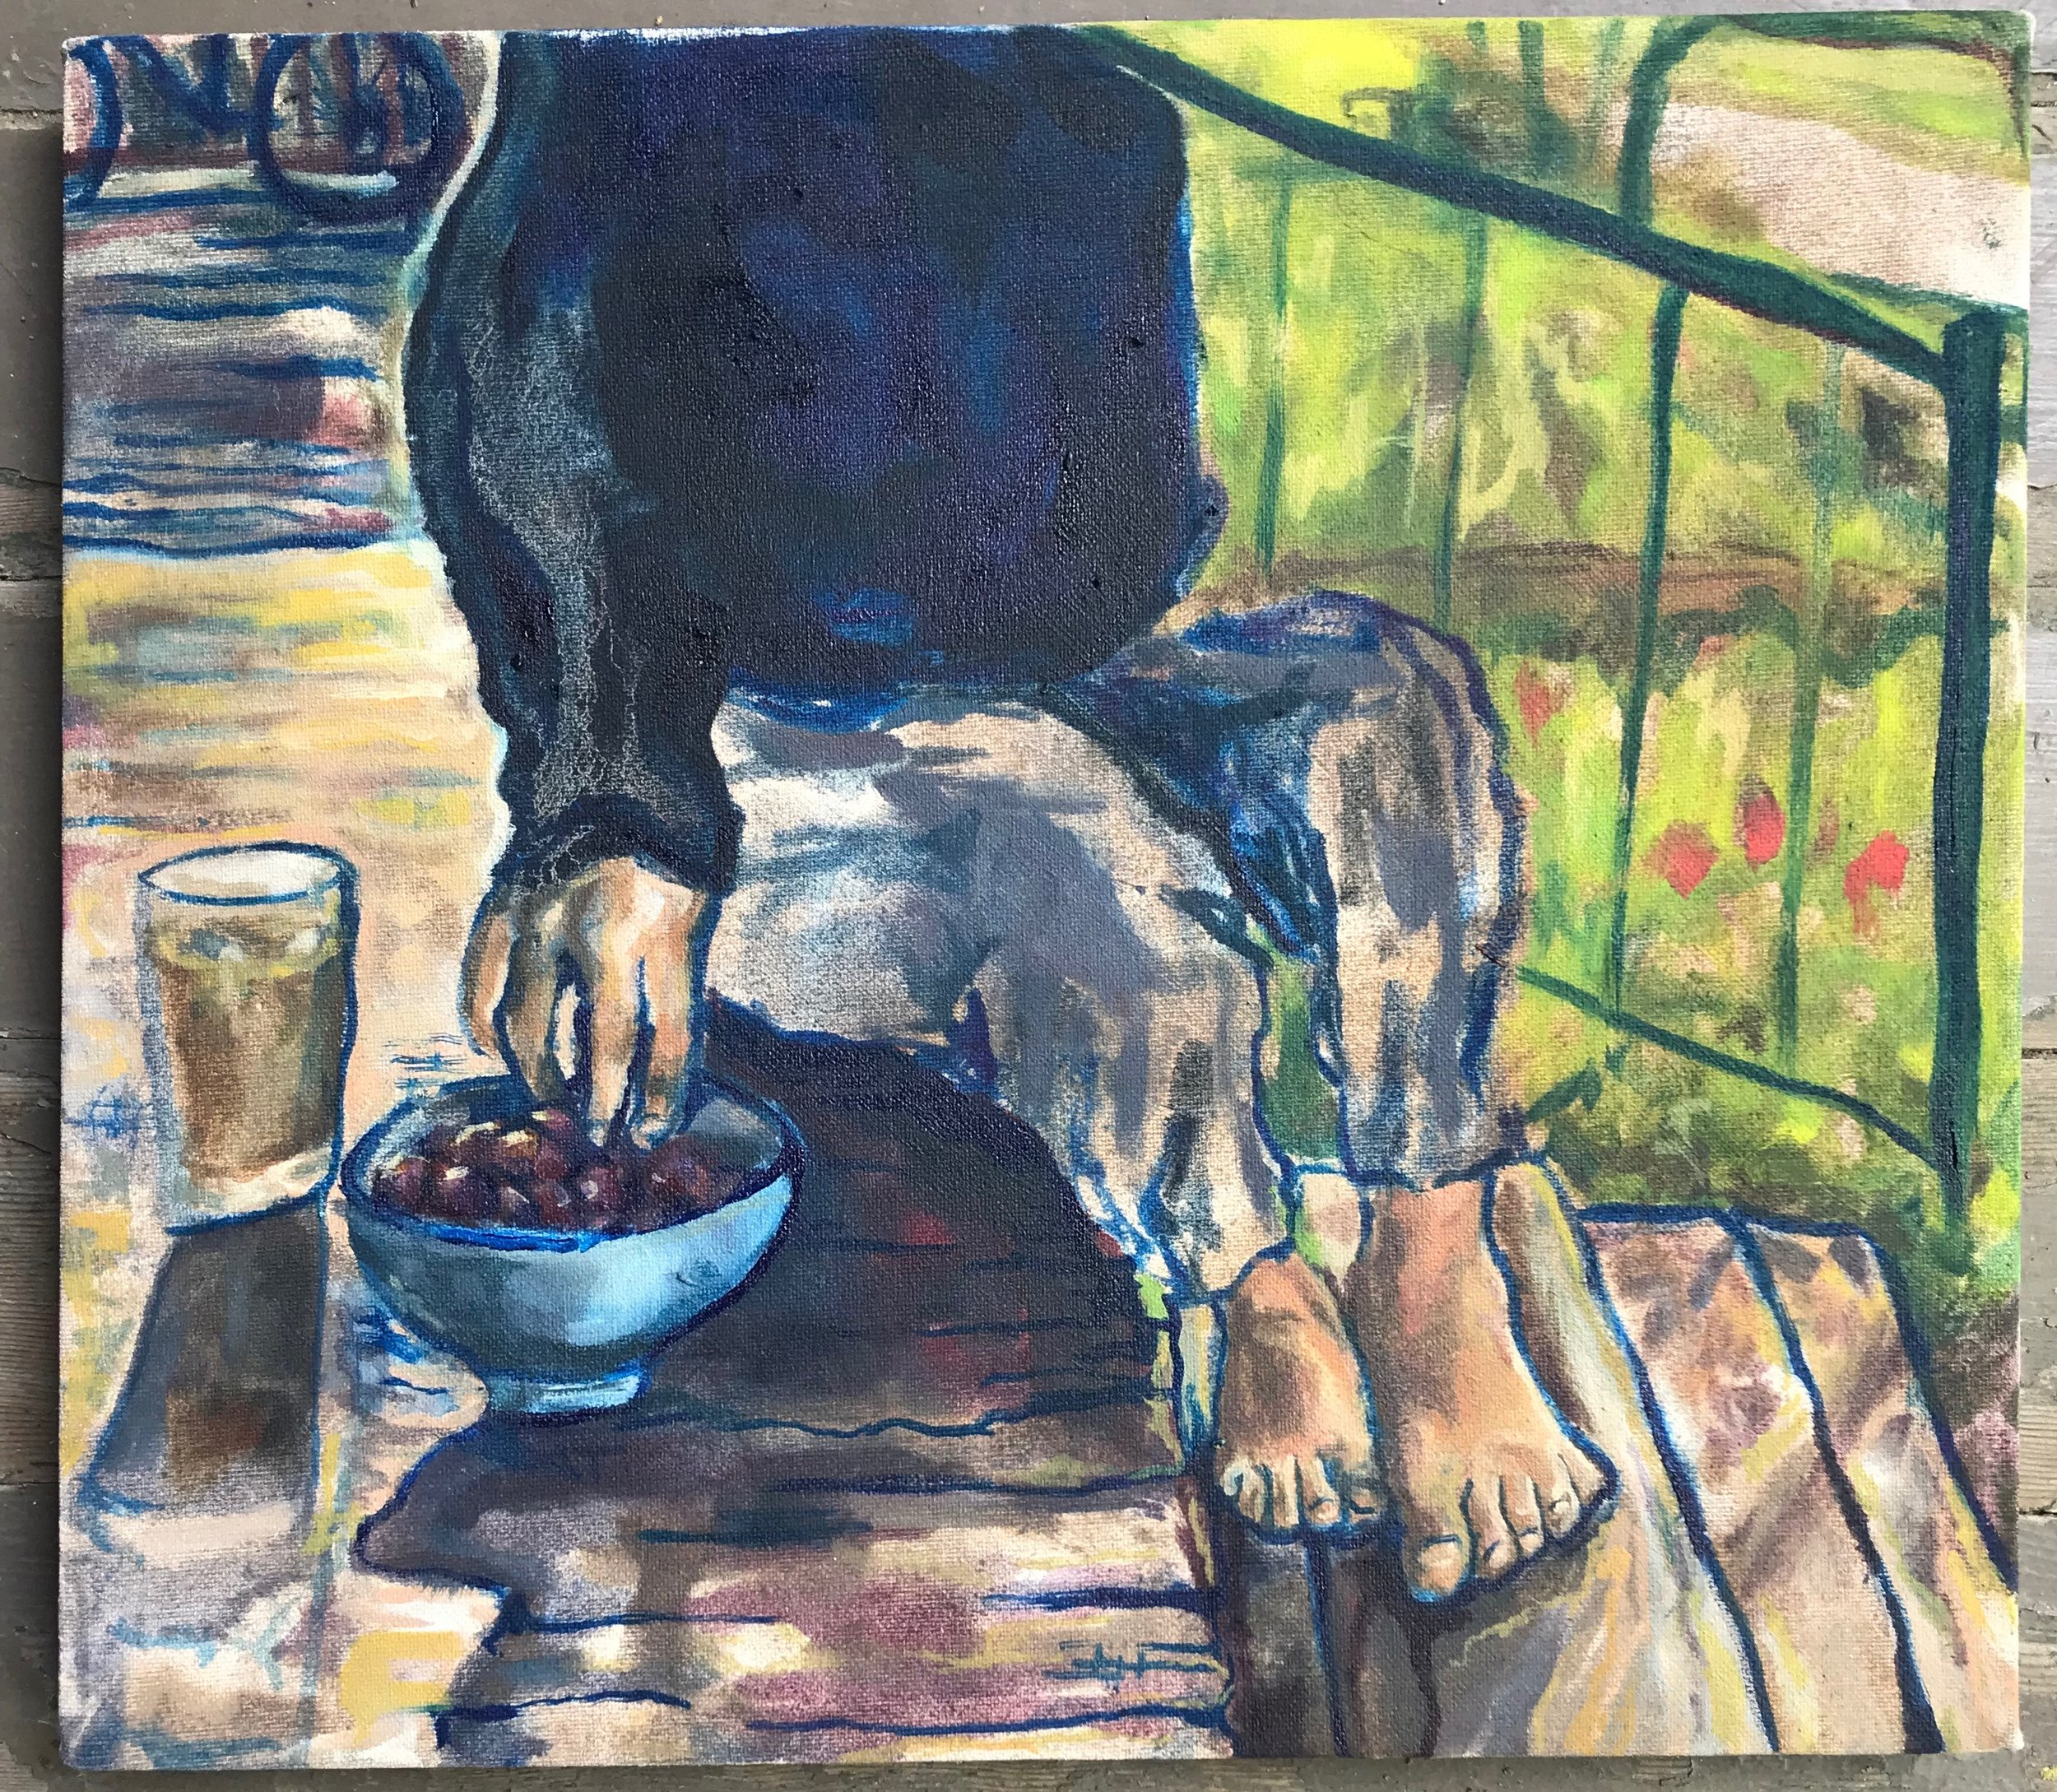 Madalyn on the Porch at 10 AM   10 x 12 in  oil on canvas